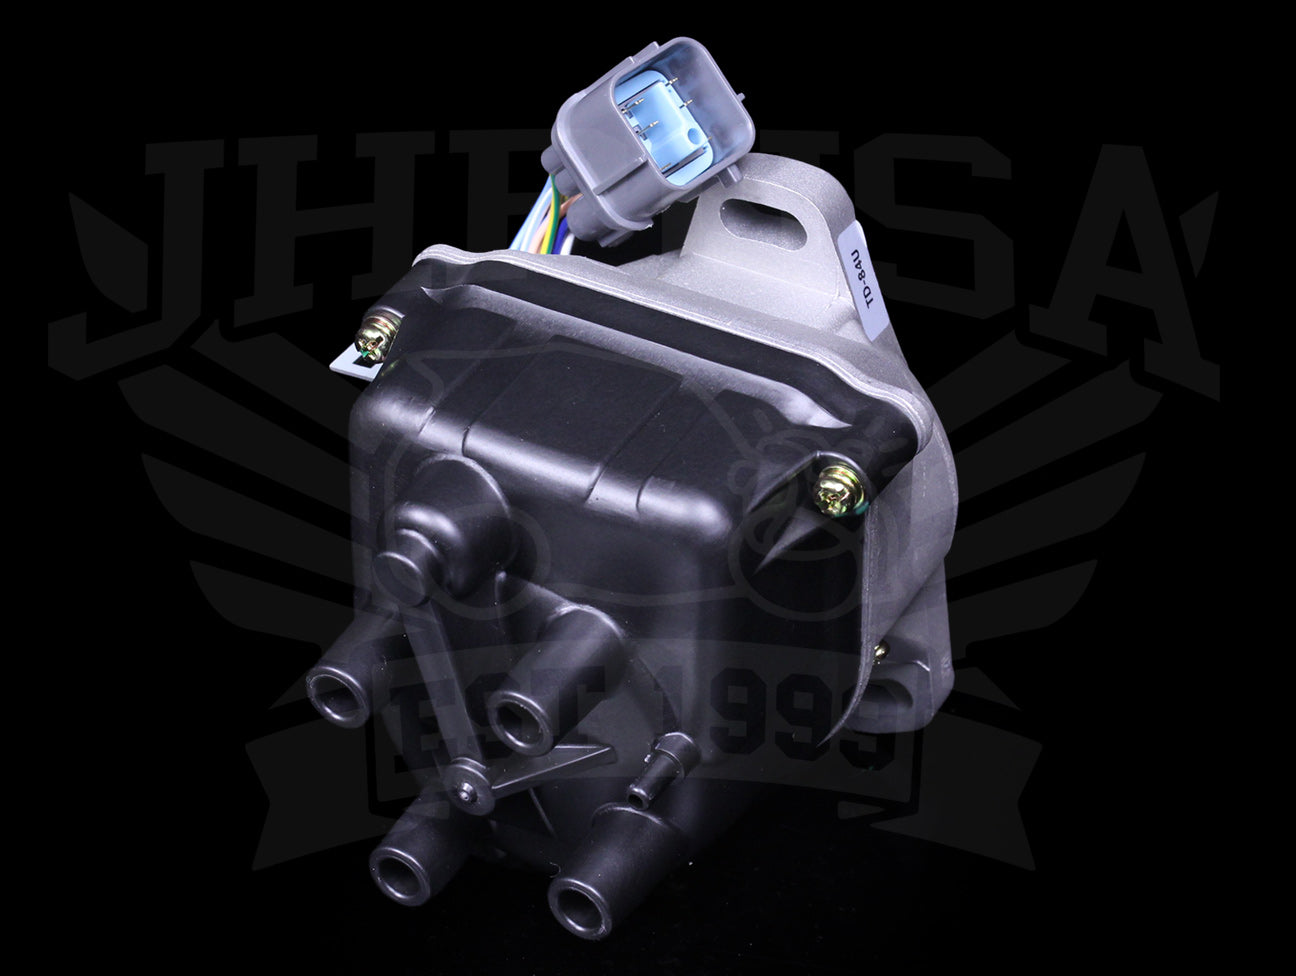 OEM Replacement Distributor - Honda/Acura B-series VTEC